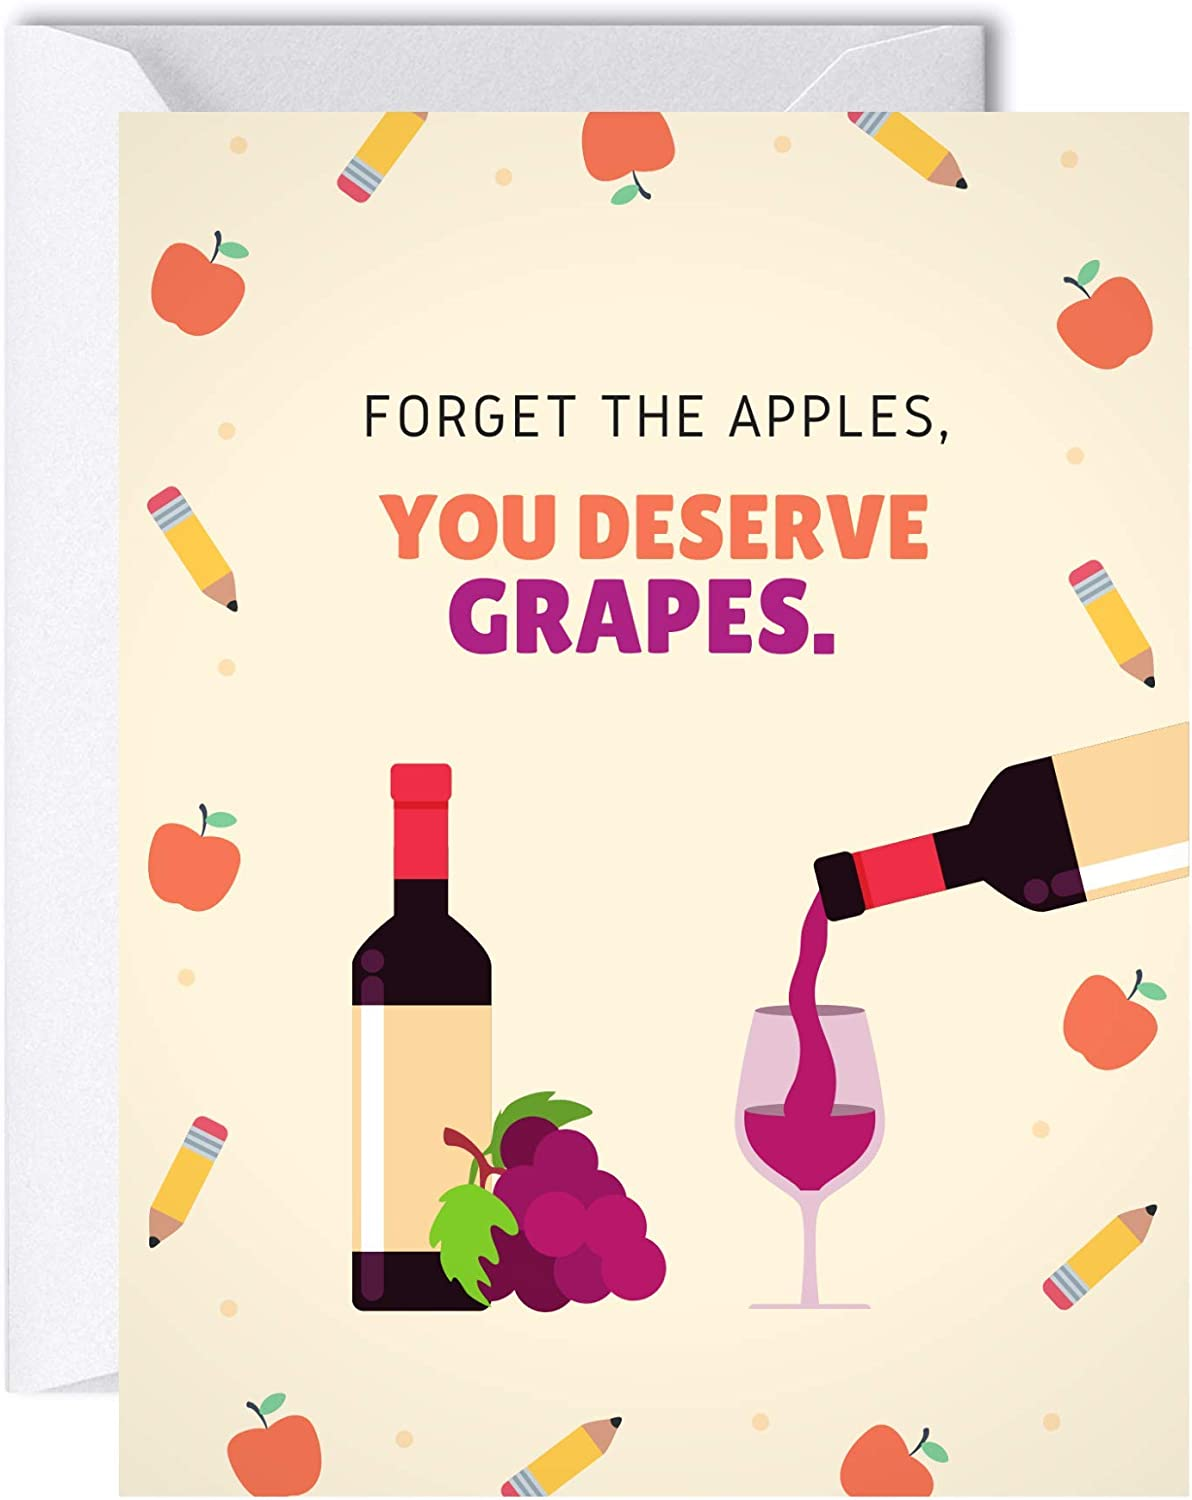 Teacher Appreciation Card, Thank You Elementary School, Pandemic Graduation, Retirement, End or Back to School Greeting Card (Forget The Apples, You Deserve Grapes)